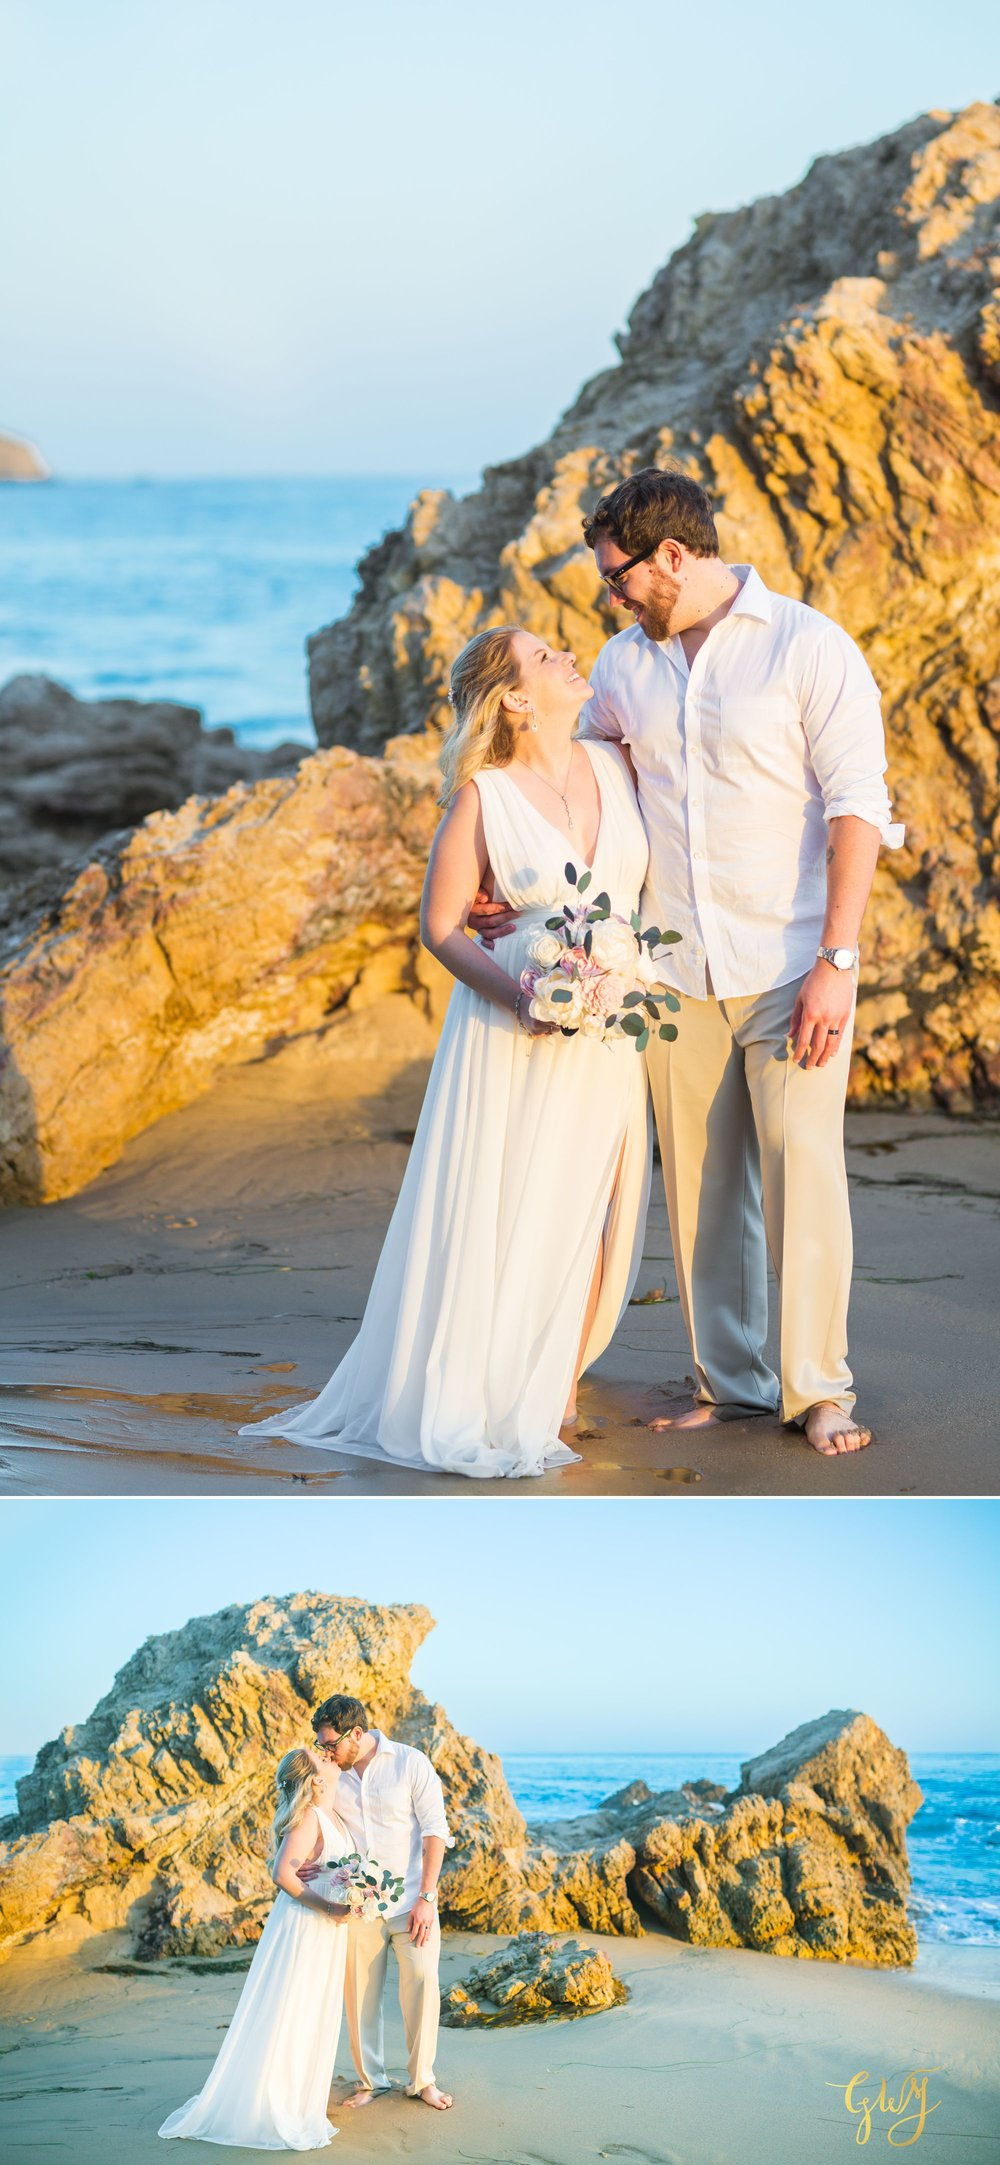 Amanda + Joe Reef Point Crystal Cove Newport Beach Sunset Romantic Intimate Elopement by Glass Woods Media 14.jpg